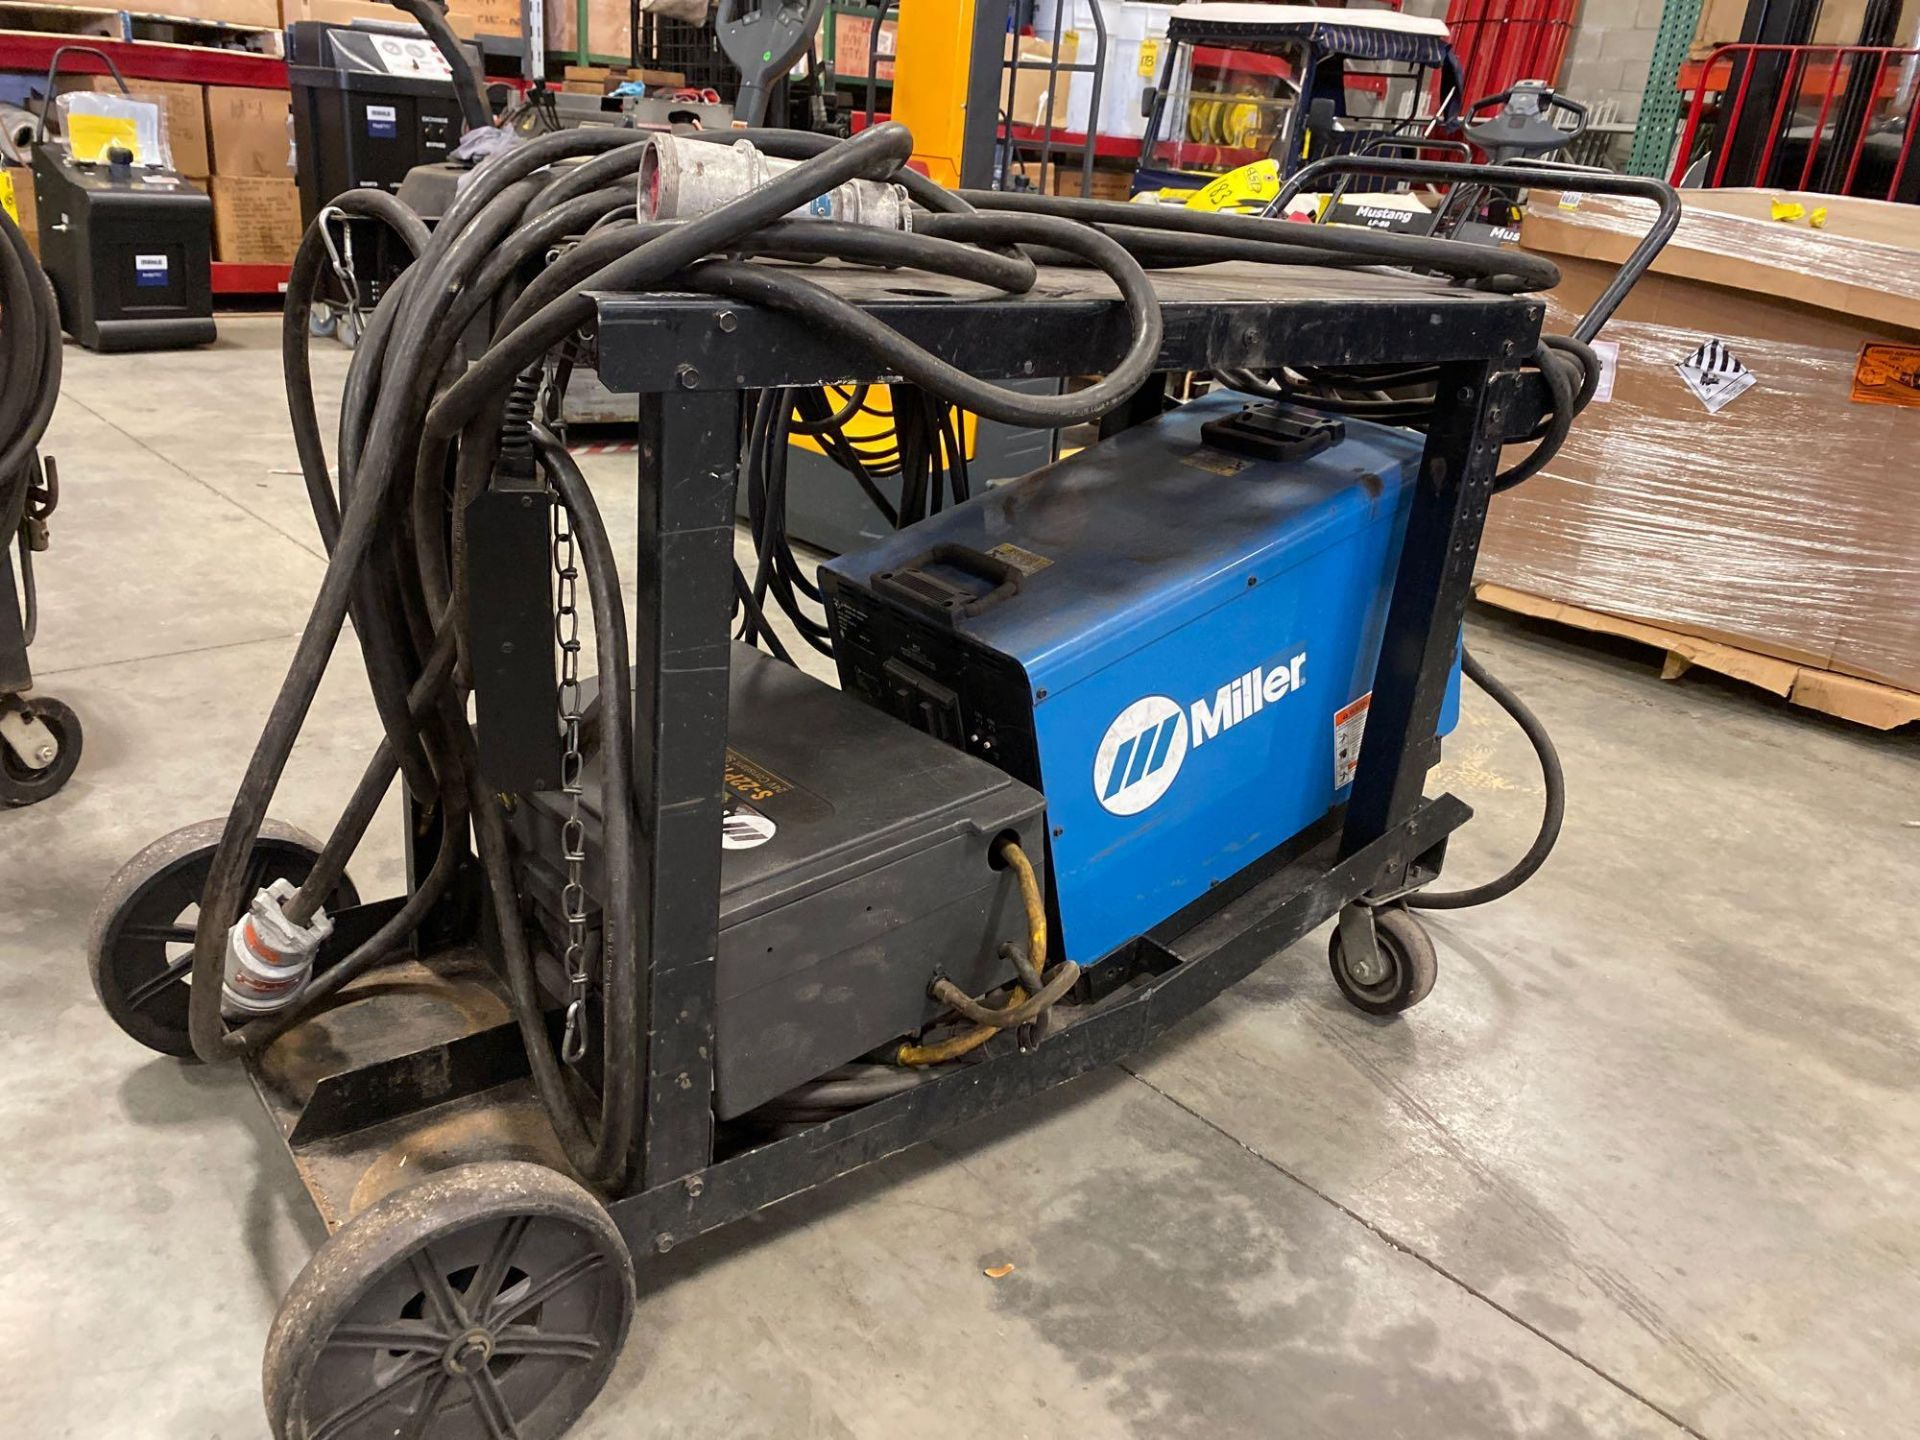 Lot 183 - MILLER INVISION 456P WELDER WITH MILLER S-22P12 24V CONSTANT SPEED WIRE FEEDER